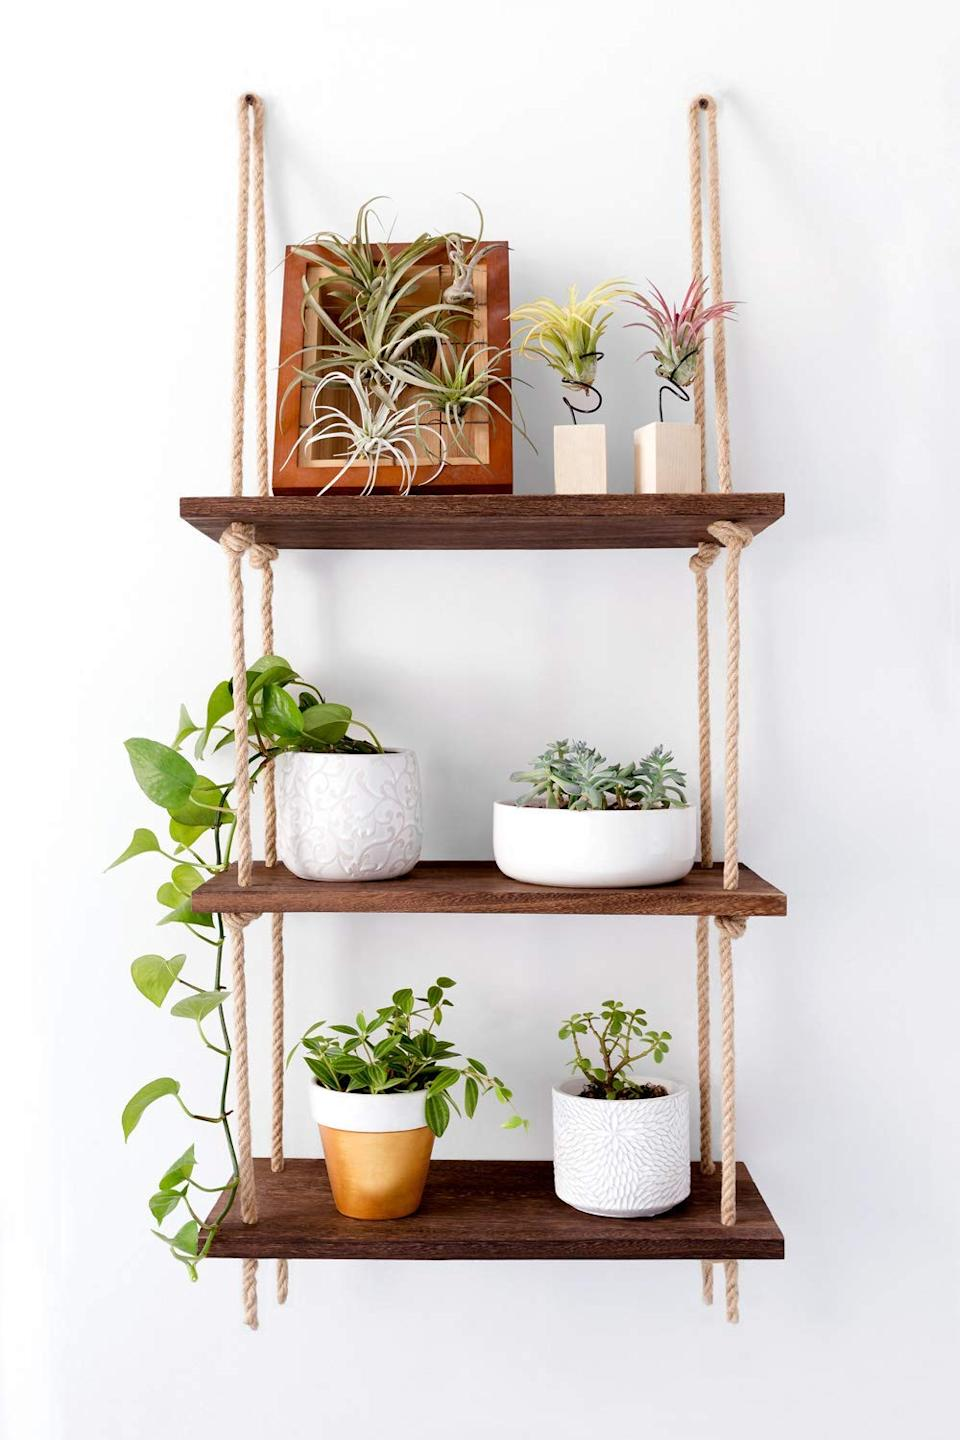 """<h3><a href=""""https://www.amazon.com/Mkono-Hanging-Storage-Shelves-Organizer/dp/B07DLMP23H/ref=sr_1_16"""" rel=""""nofollow noopener"""" target=""""_blank"""" data-ylk=""""slk:Wood Hanging Wall Shelf"""" class=""""link rapid-noclick-resp"""">Wood Hanging Wall Shelf</a></h3><br>This bohemian storage solution has multipurpose shelving power for any area inside your space — whether it's streamlining kitchen essentials to books or beauty goods.<br><br><strong>Mkono</strong> Wood Hanging Shelf Wall, $, available at <a href=""""https://www.amazon.com/Mkono-Hanging-Storage-Shelves-Organizer/dp/B07DLMP23H/ref=sr_1_16"""" rel=""""nofollow noopener"""" target=""""_blank"""" data-ylk=""""slk:Amazon"""" class=""""link rapid-noclick-resp"""">Amazon</a>"""